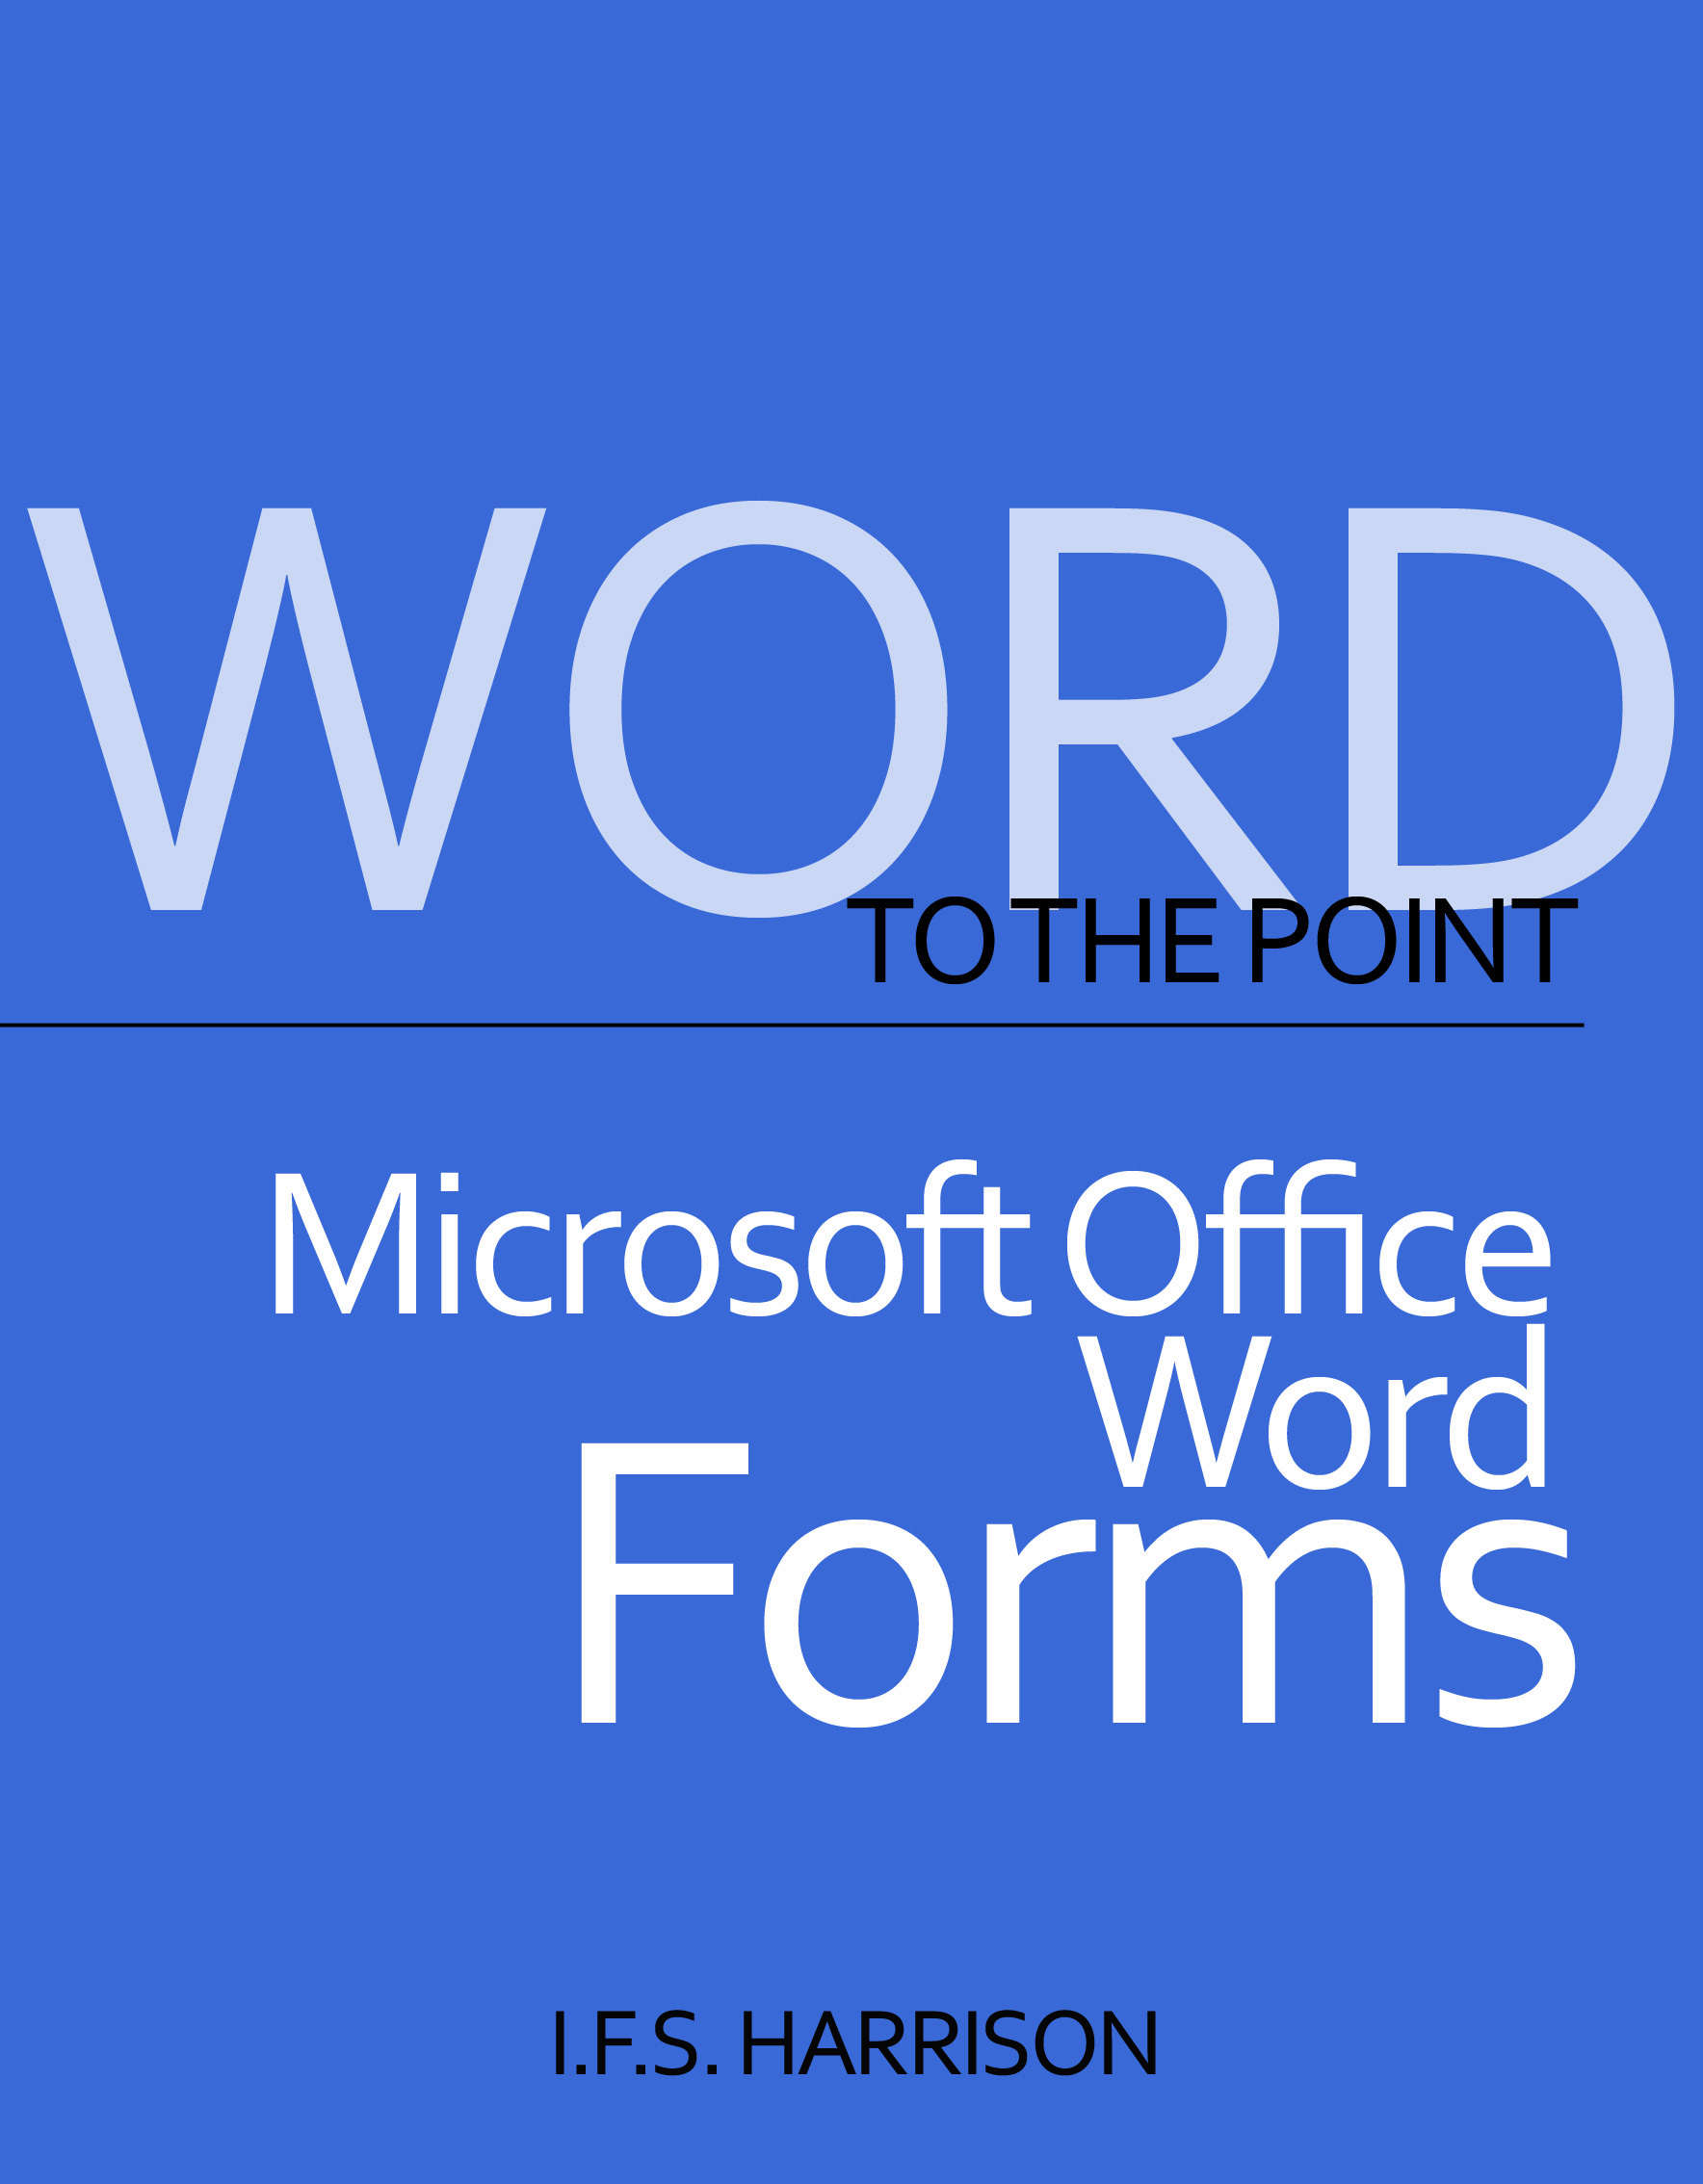 To The Point… Microsoft Office Word Forms